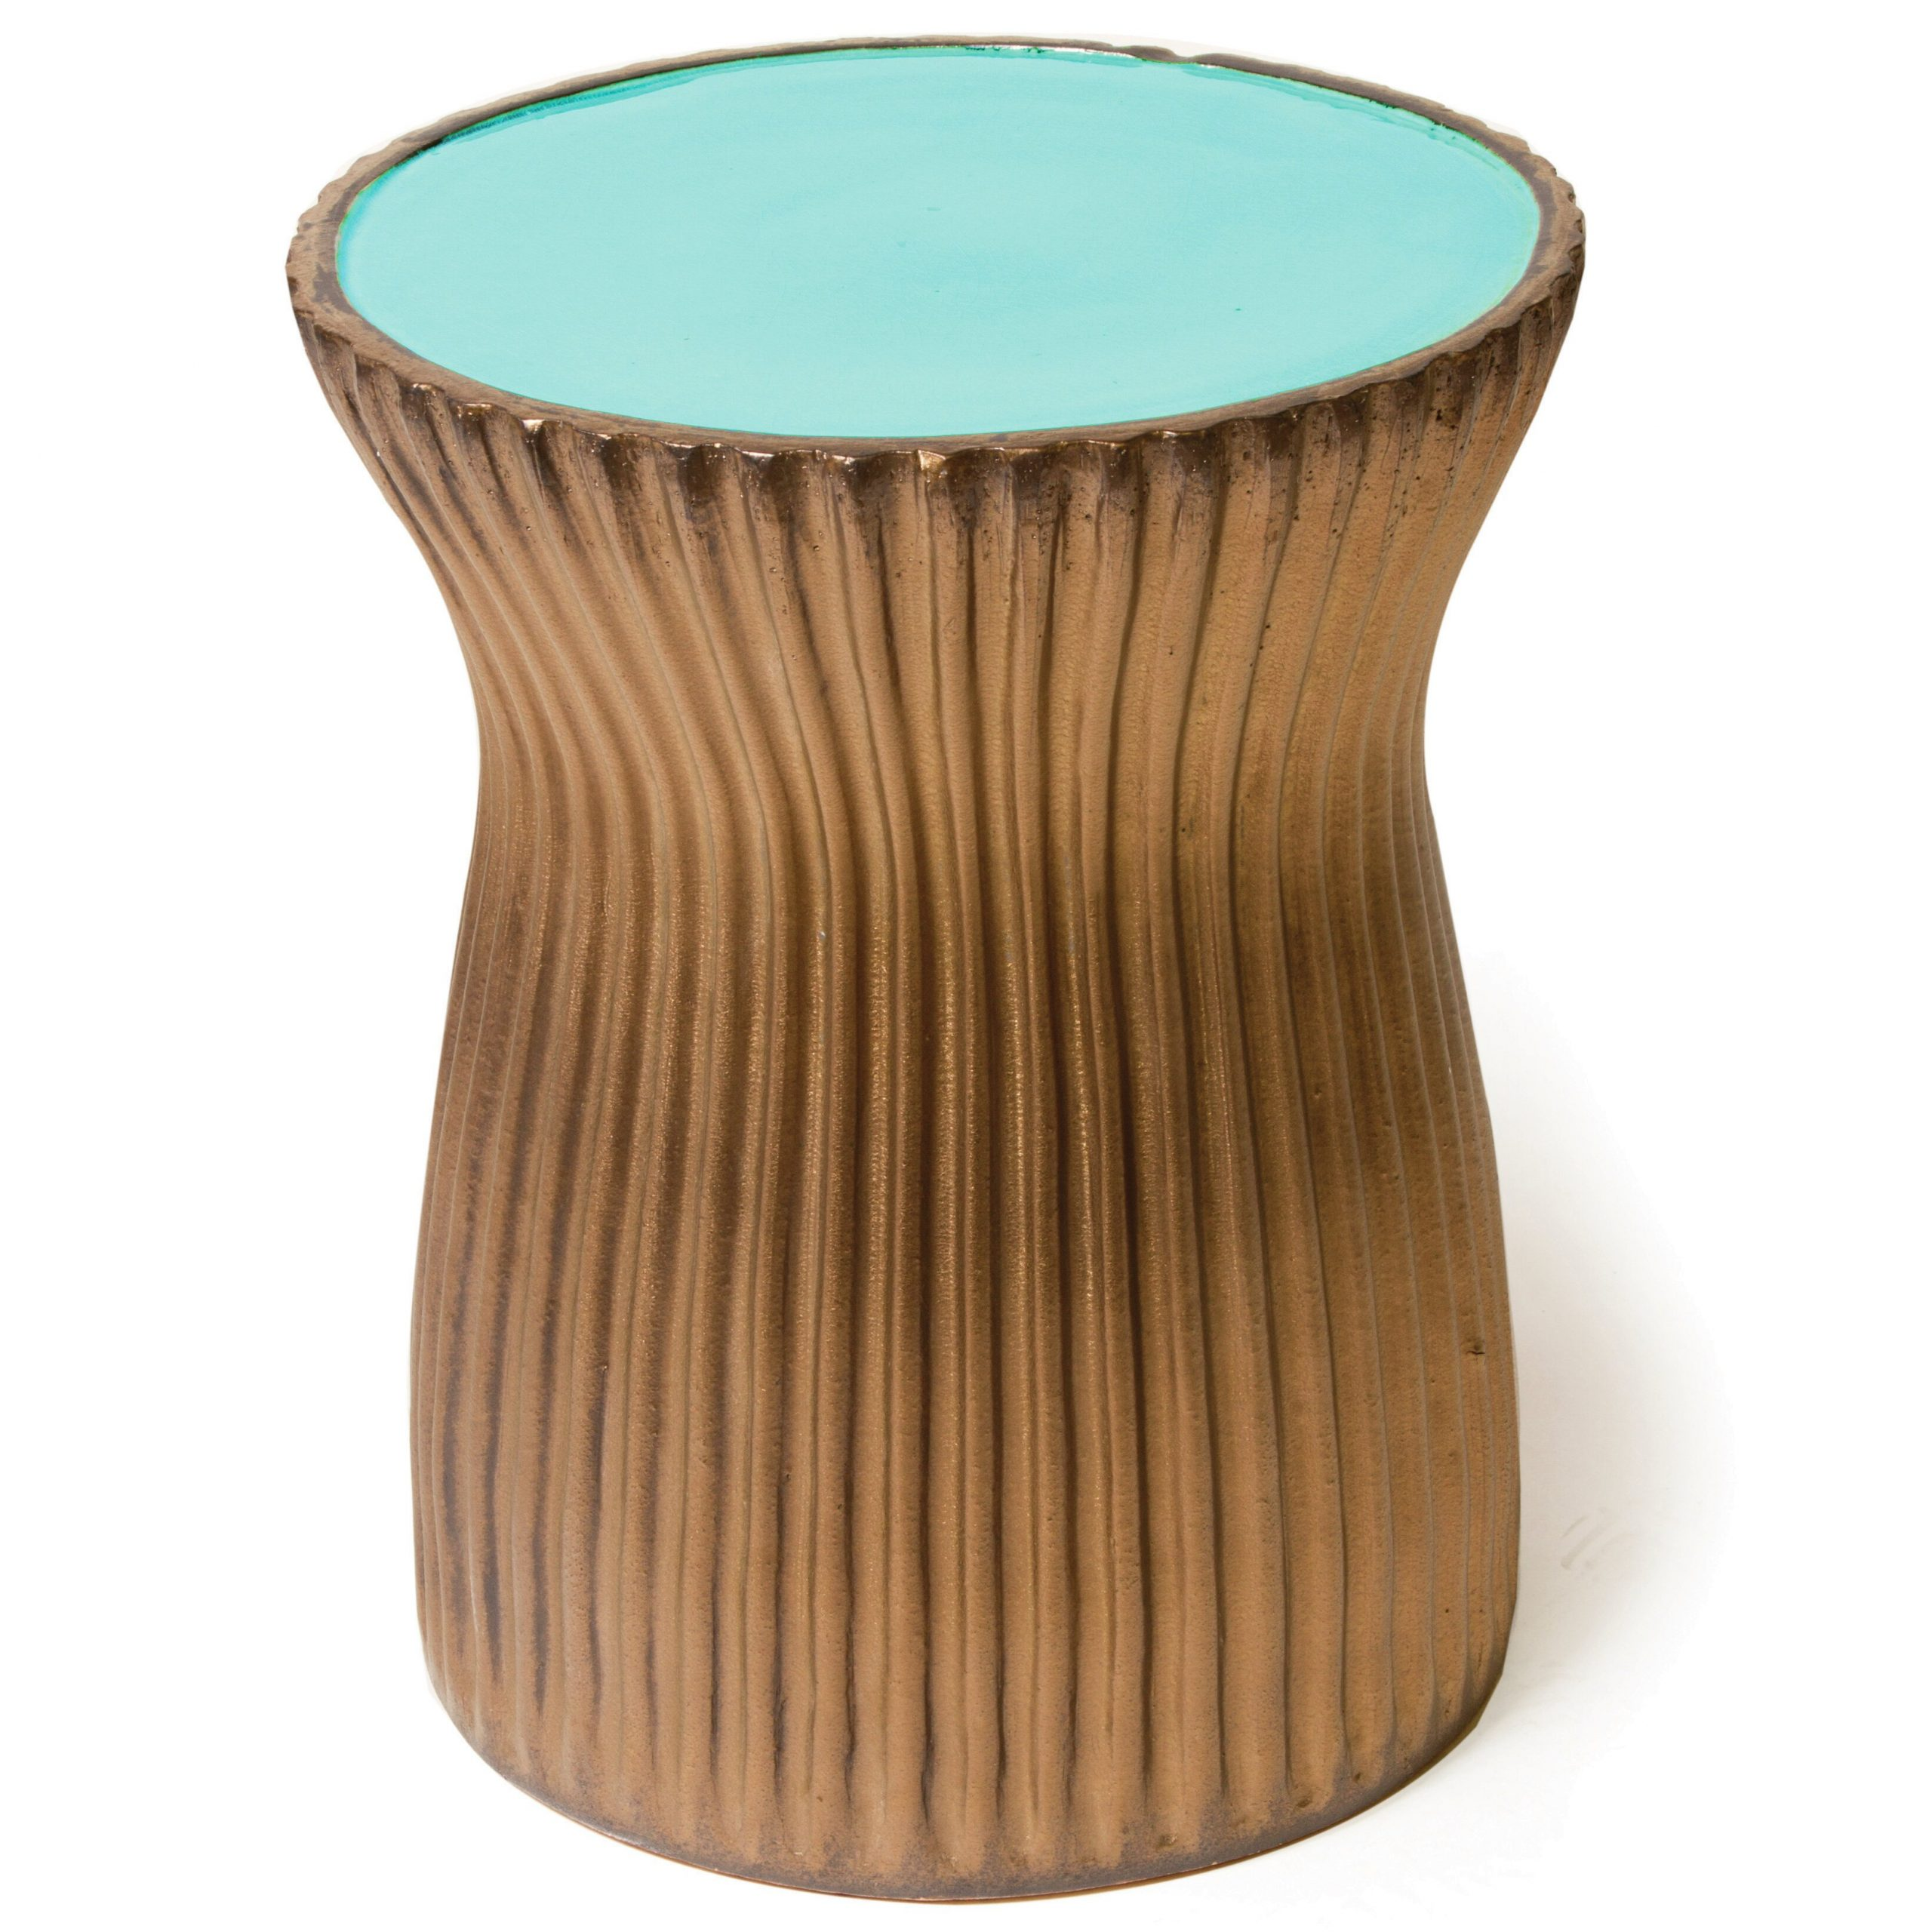 Ridged Ceramic Accent Stool With Arista Ceramic Garden Stools (View 6 of 25)